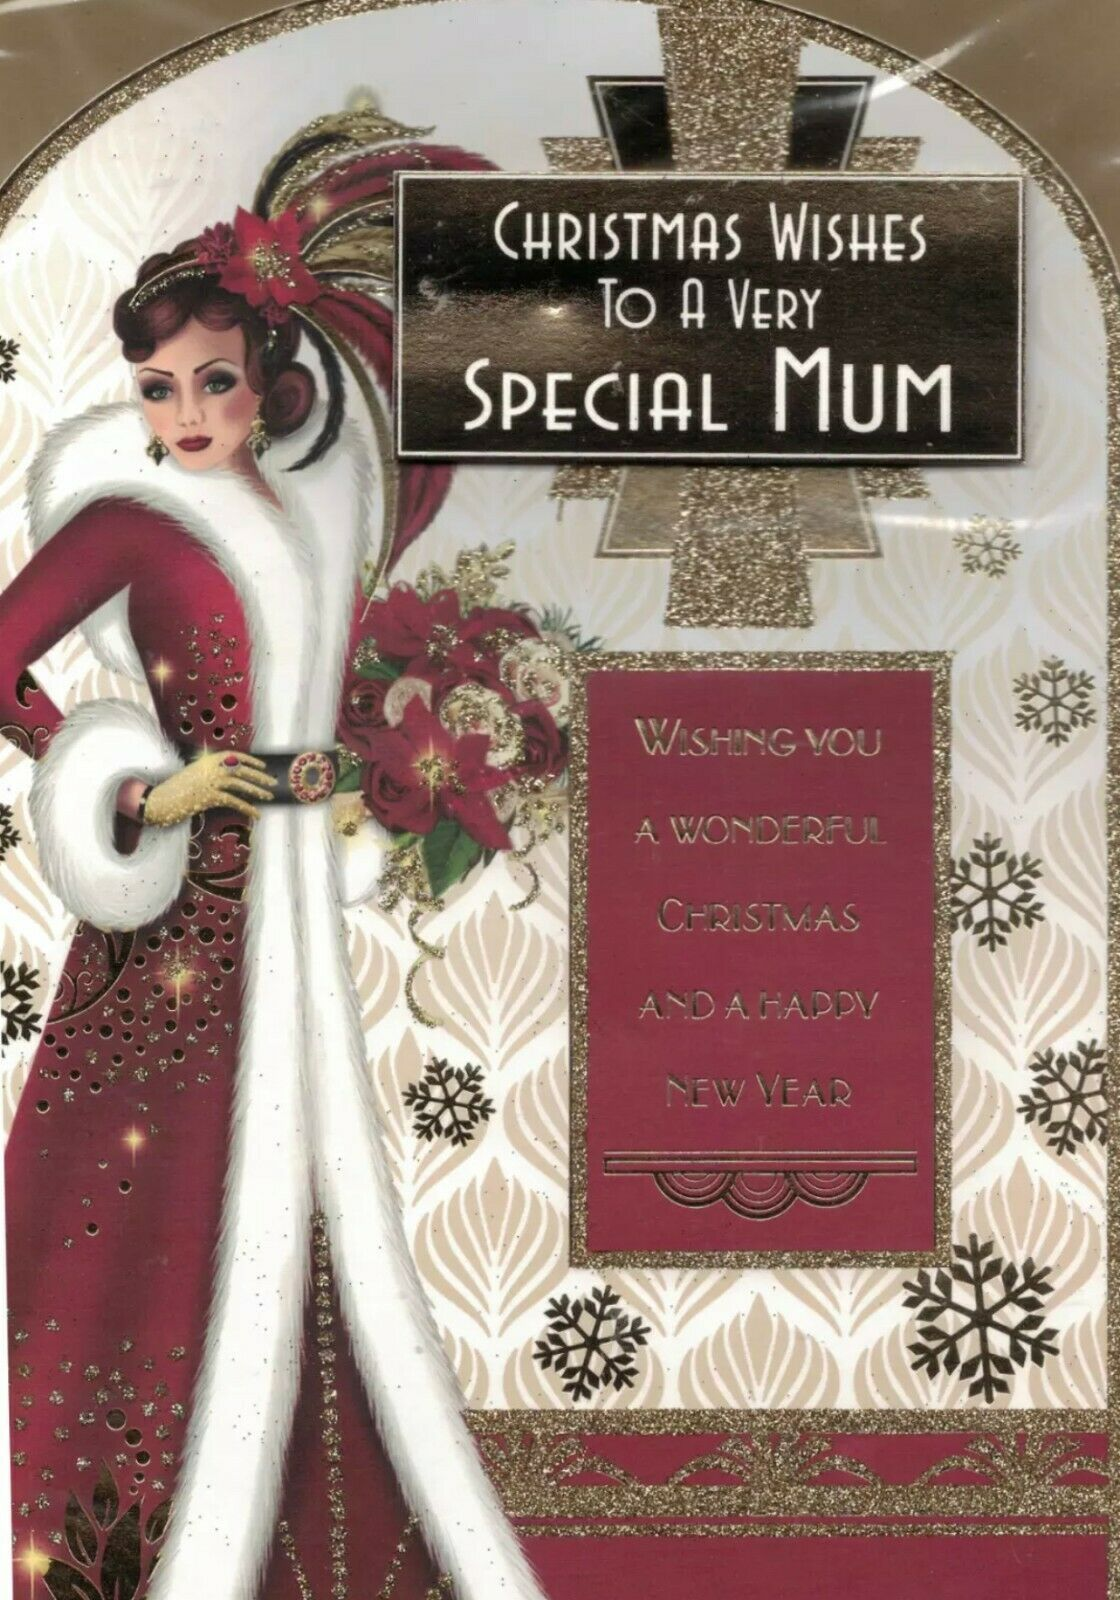 Art Deco Christmas Card - Christmas Wishes To A Very Special Mum